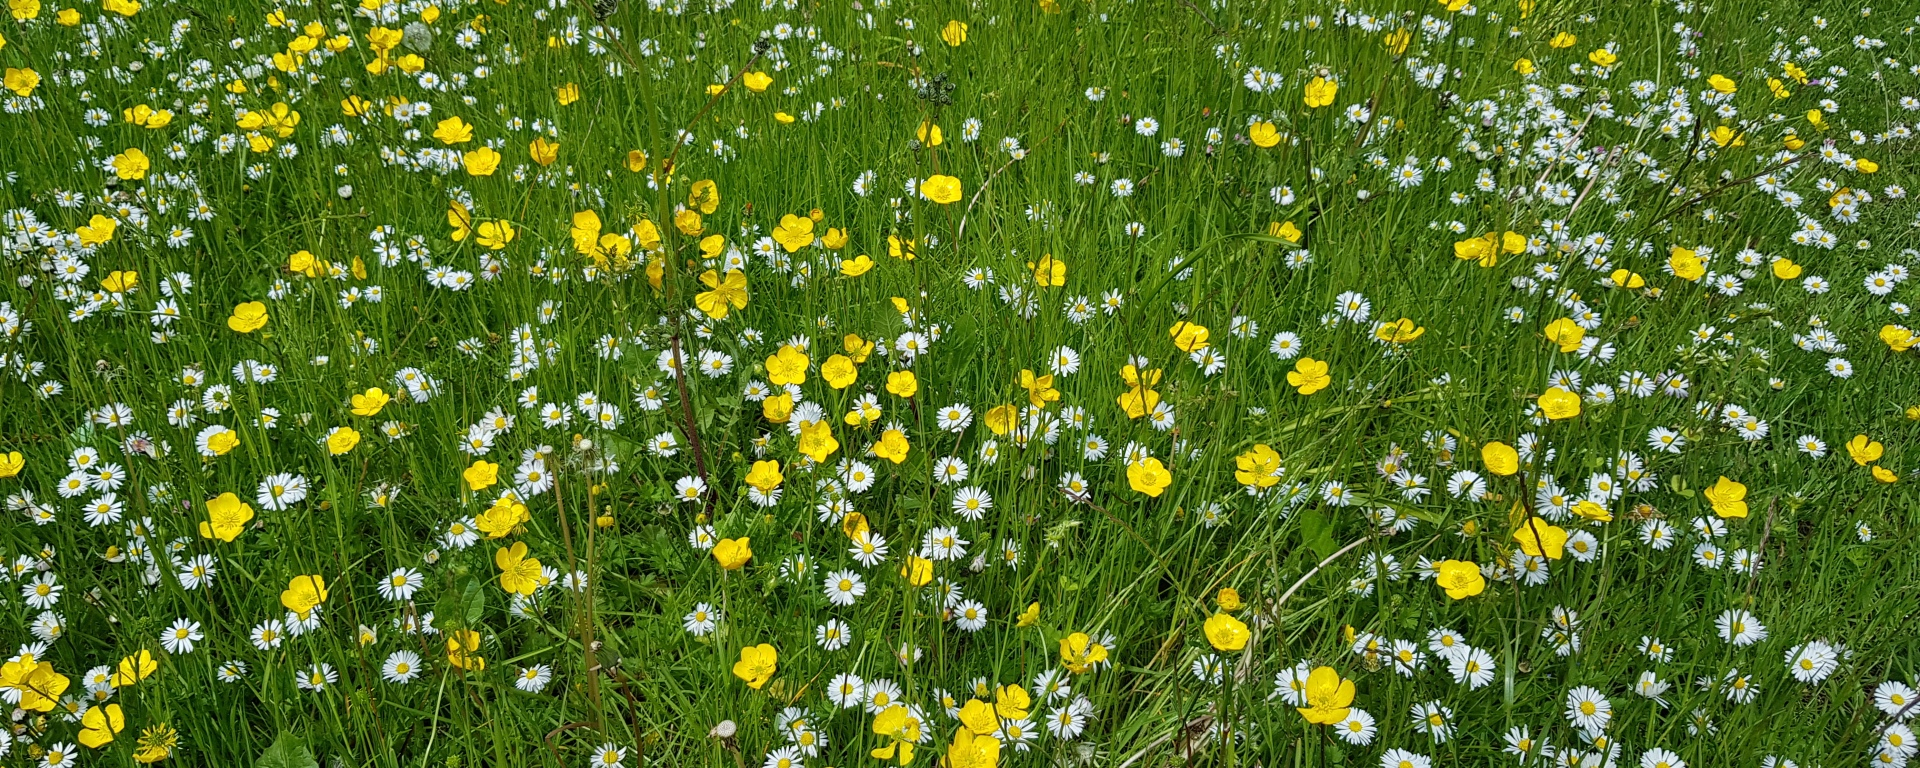 Thank you notes field of daisies and buttercups